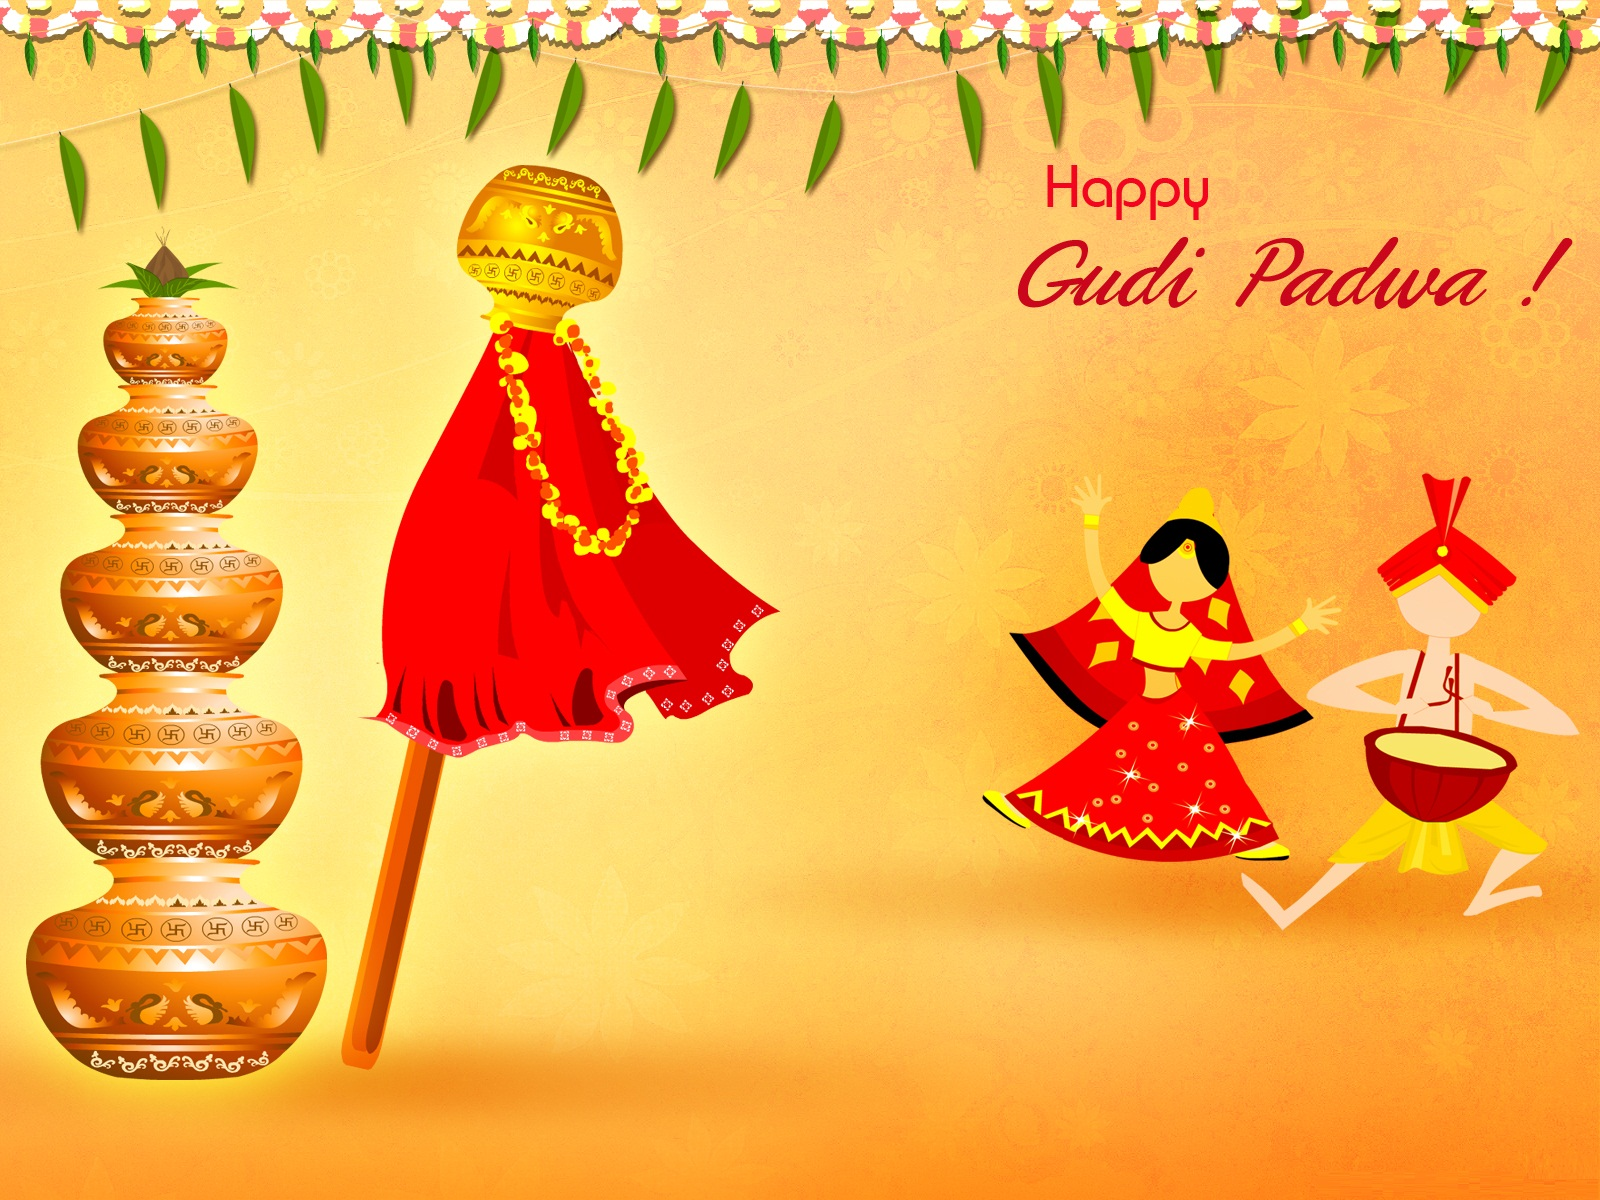 Gudi-Padwa-Images-And-Pictures-Insanity-Flows-wallpaper-wpc5805618